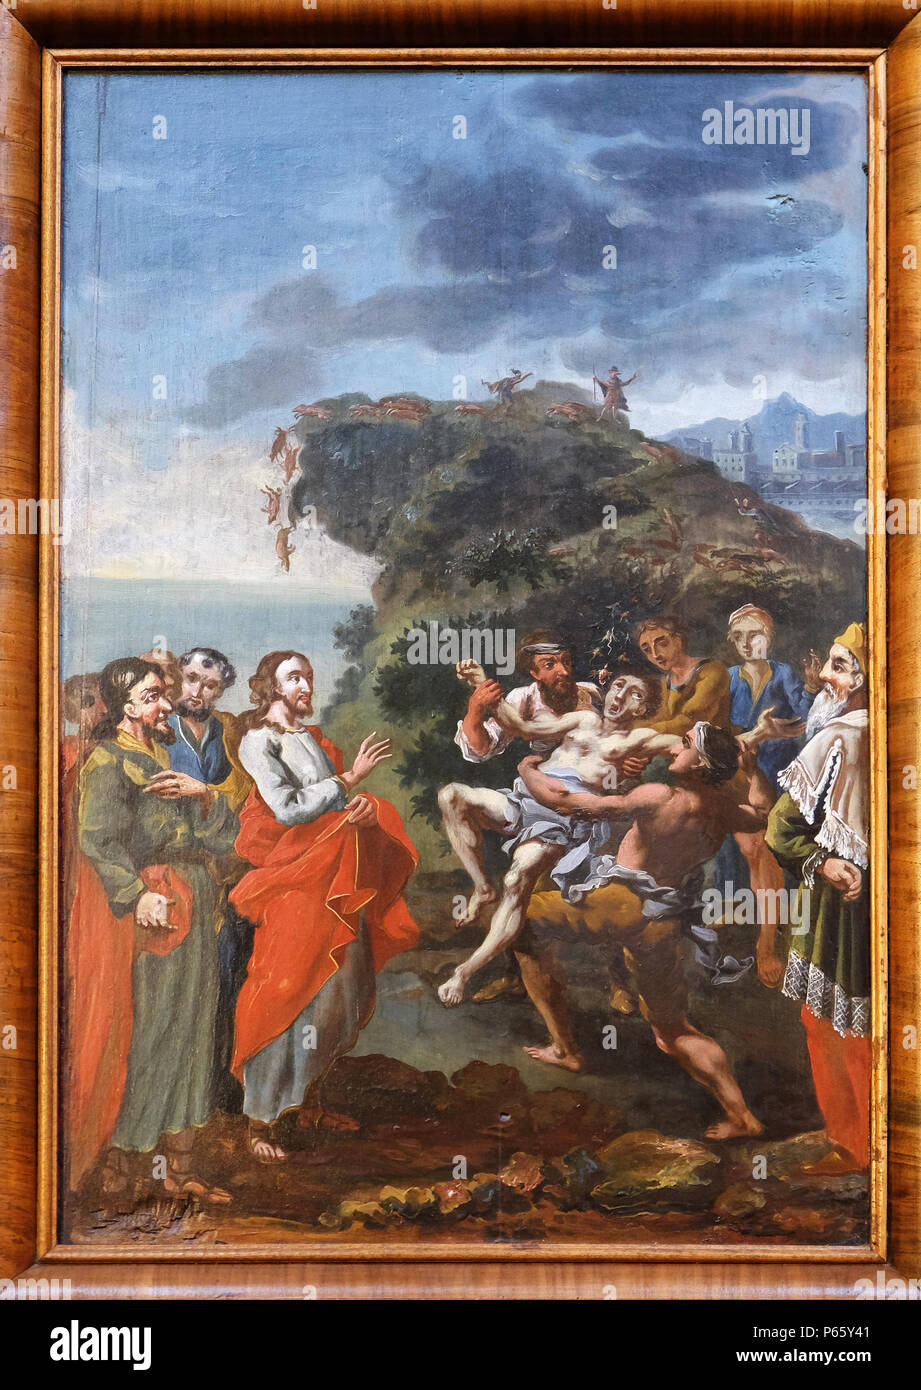 Miracles of Jesus: Expelling demons, church of Immaculate Conception in Lepoglava, Croatia - Stock Image